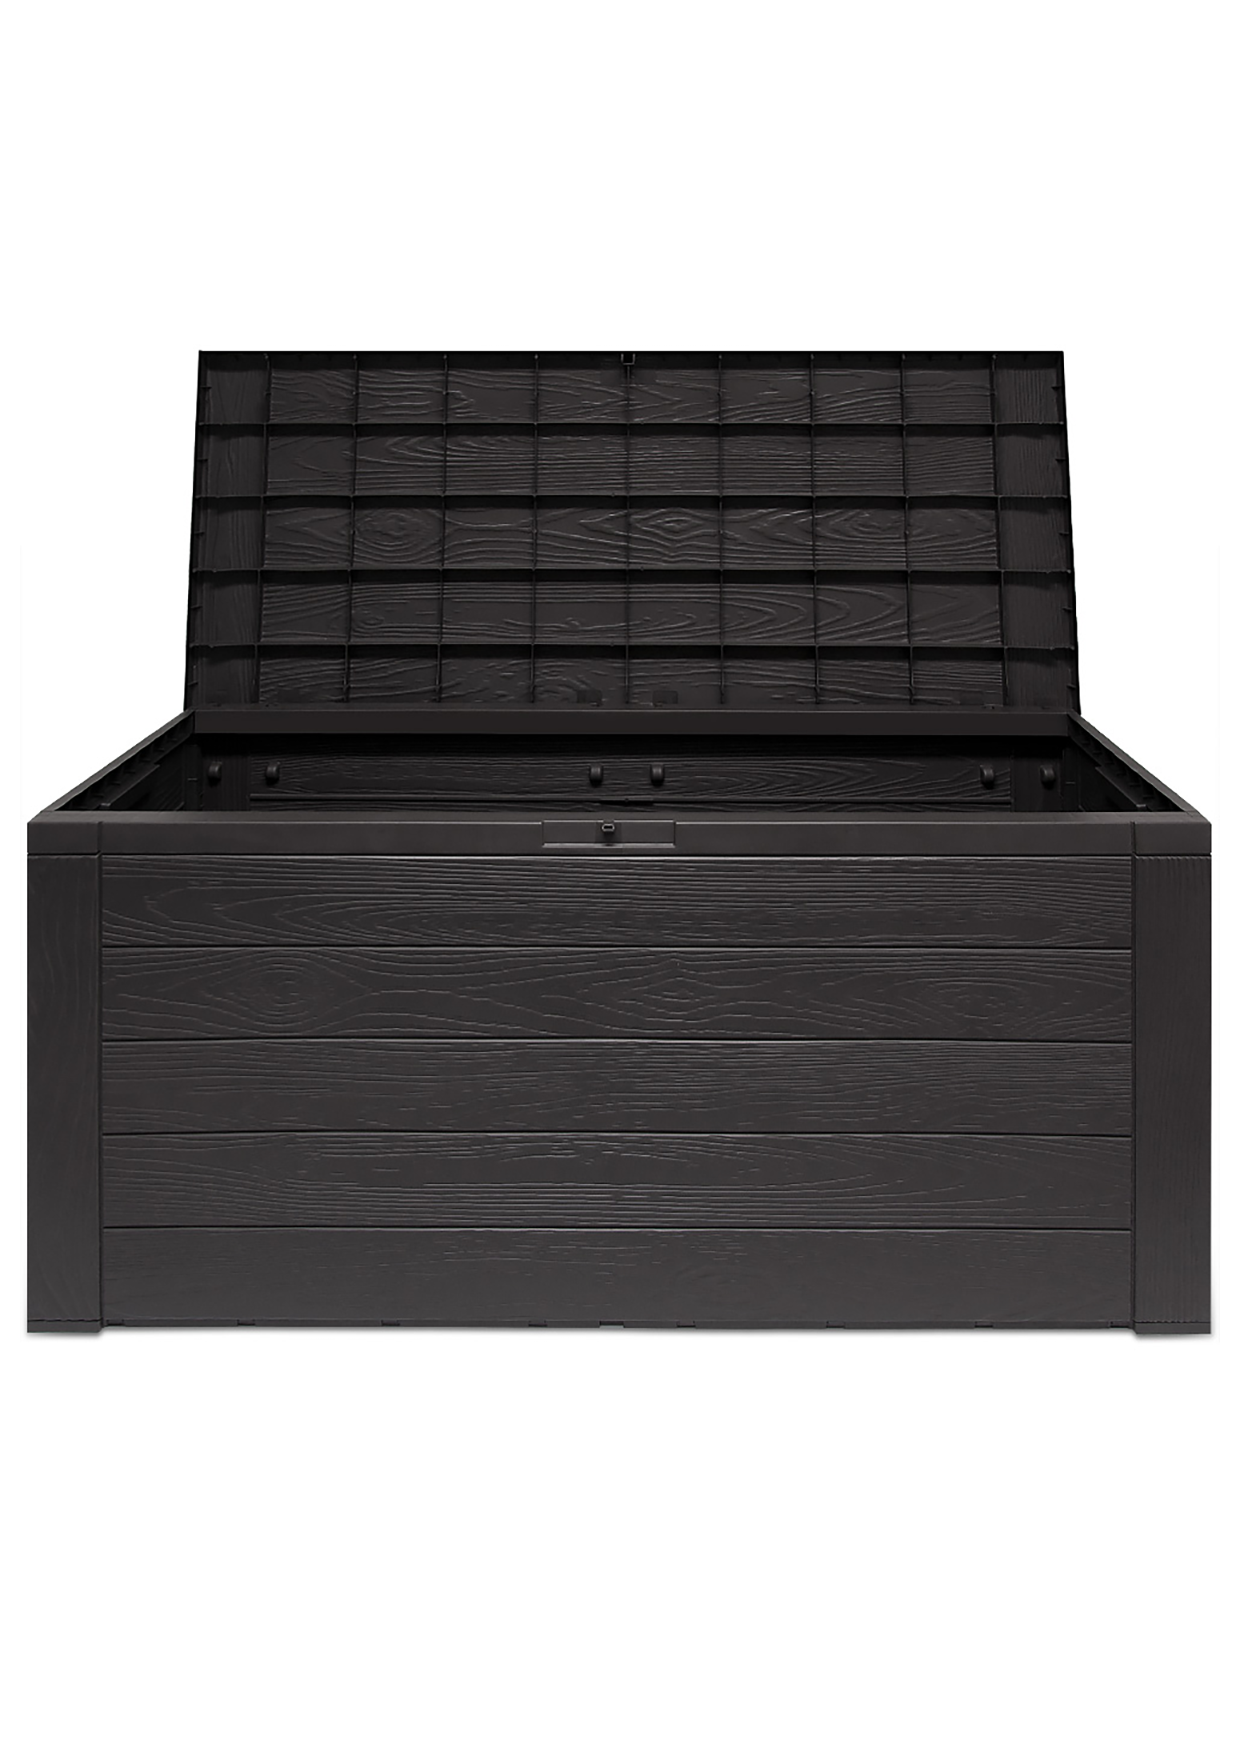 gartenbox dietschys gmbh. Black Bedroom Furniture Sets. Home Design Ideas